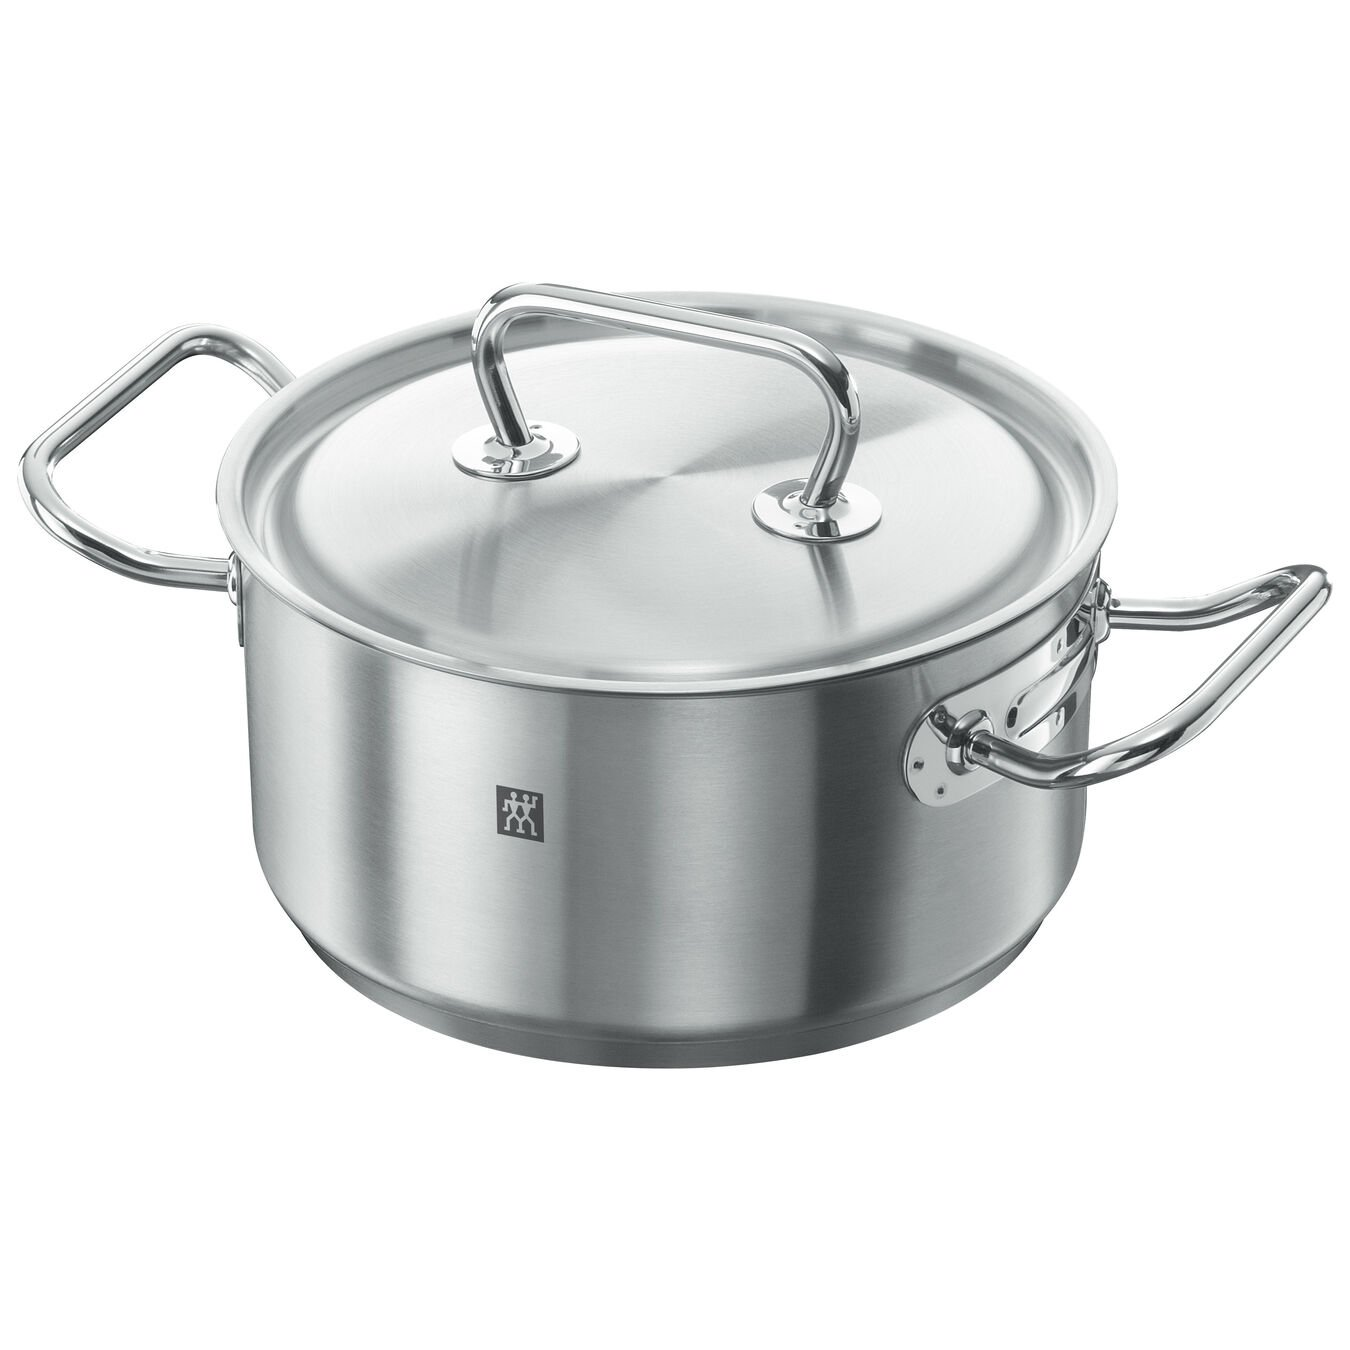 12 Piece 18/10 Stainless Steel Cookware set,,large 4